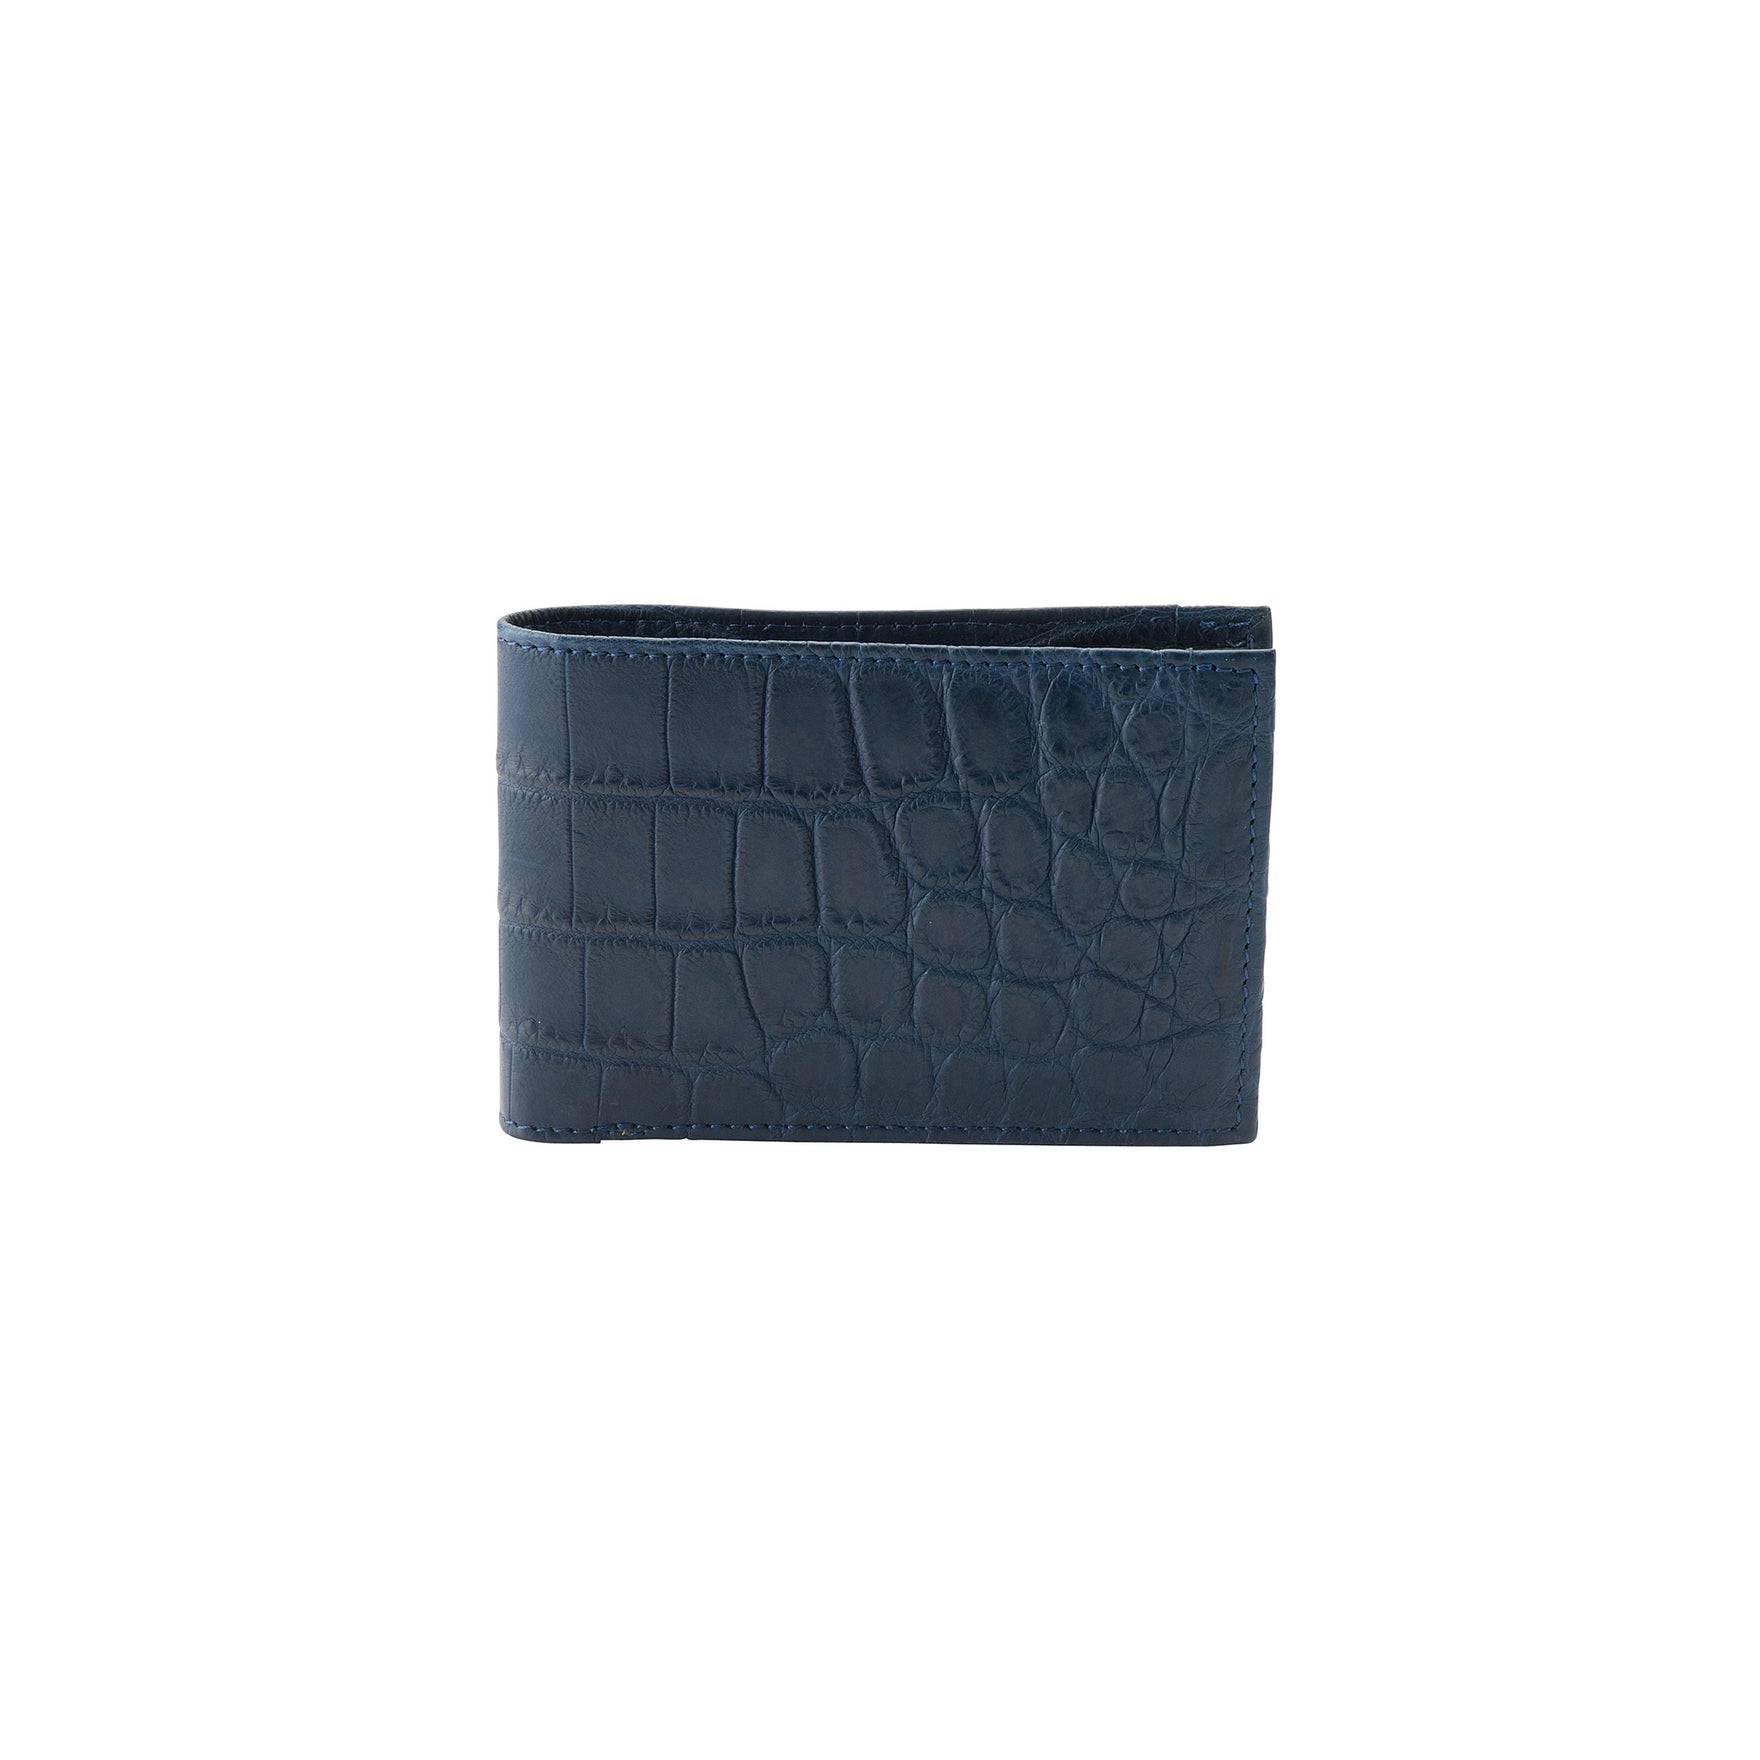 LIN8 Australia's bespoke luxury leather goods and wallets made in Australia with genuine French chevre, crocodile, taurillon leathers